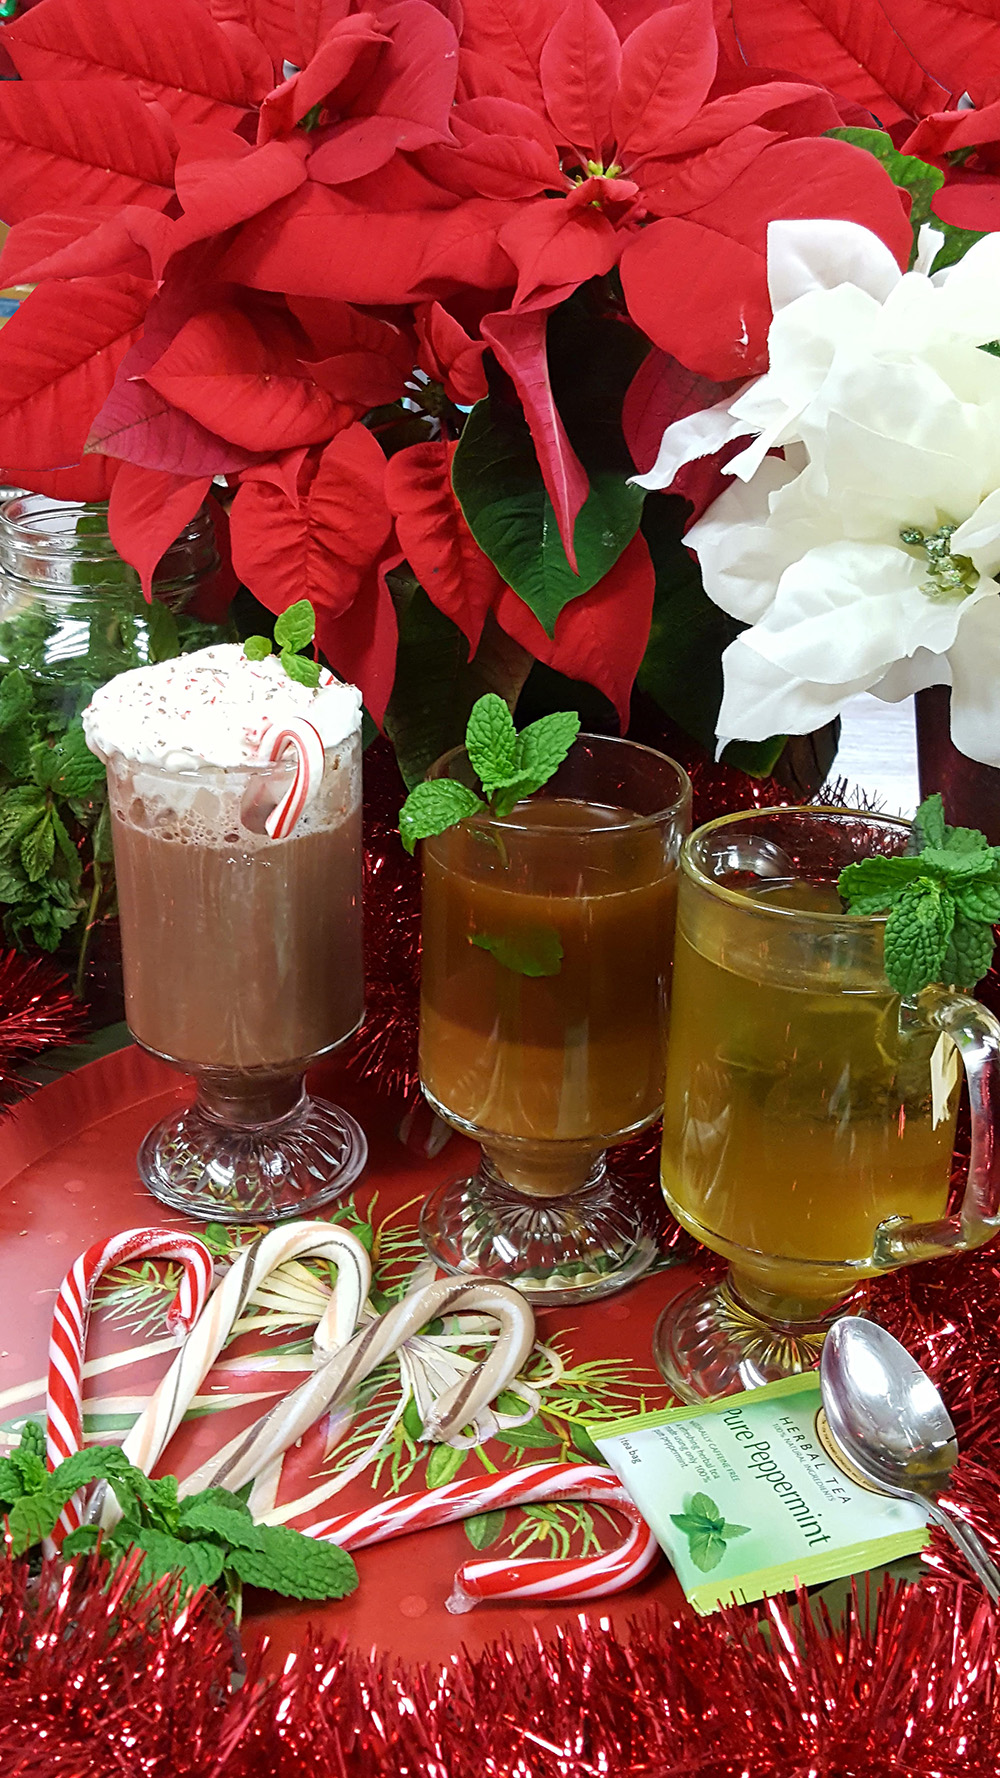 Mint can enhance drinks in several ways, from adding a single sprig to placing whole leaves in the drink. Photo by Wendy Hanson Mazet, Cooperative Extension.